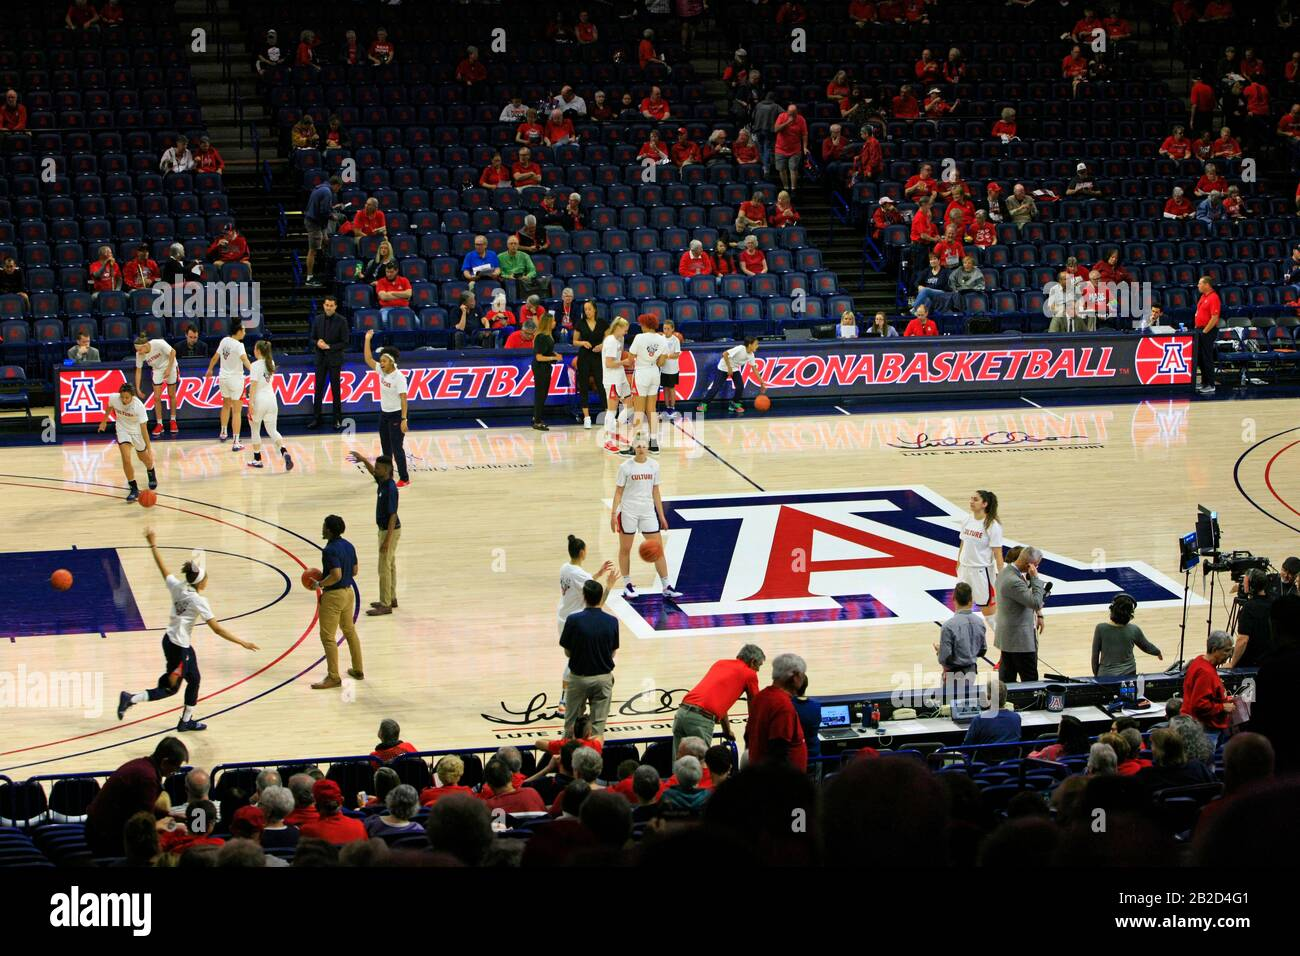 Arizona Vs Stanford Girls University Basketball game at the UofA McKale Memorial center basketball arena in Tucson AZ Stock Photo